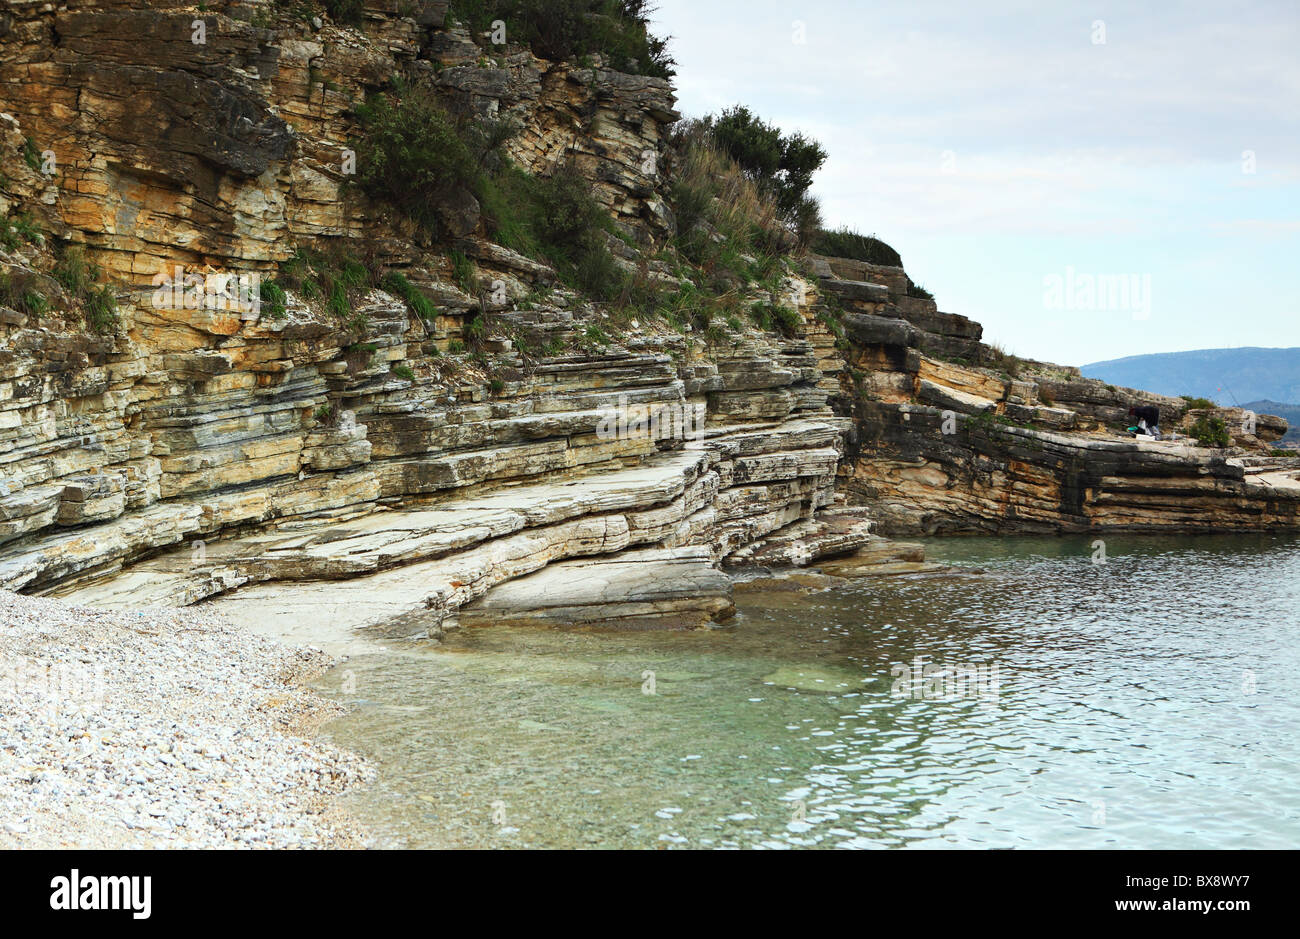 Limestones unconformably overlaid by shales with faulting (centre right) and evidence of tectonic activity, Corfu, - Stock Image